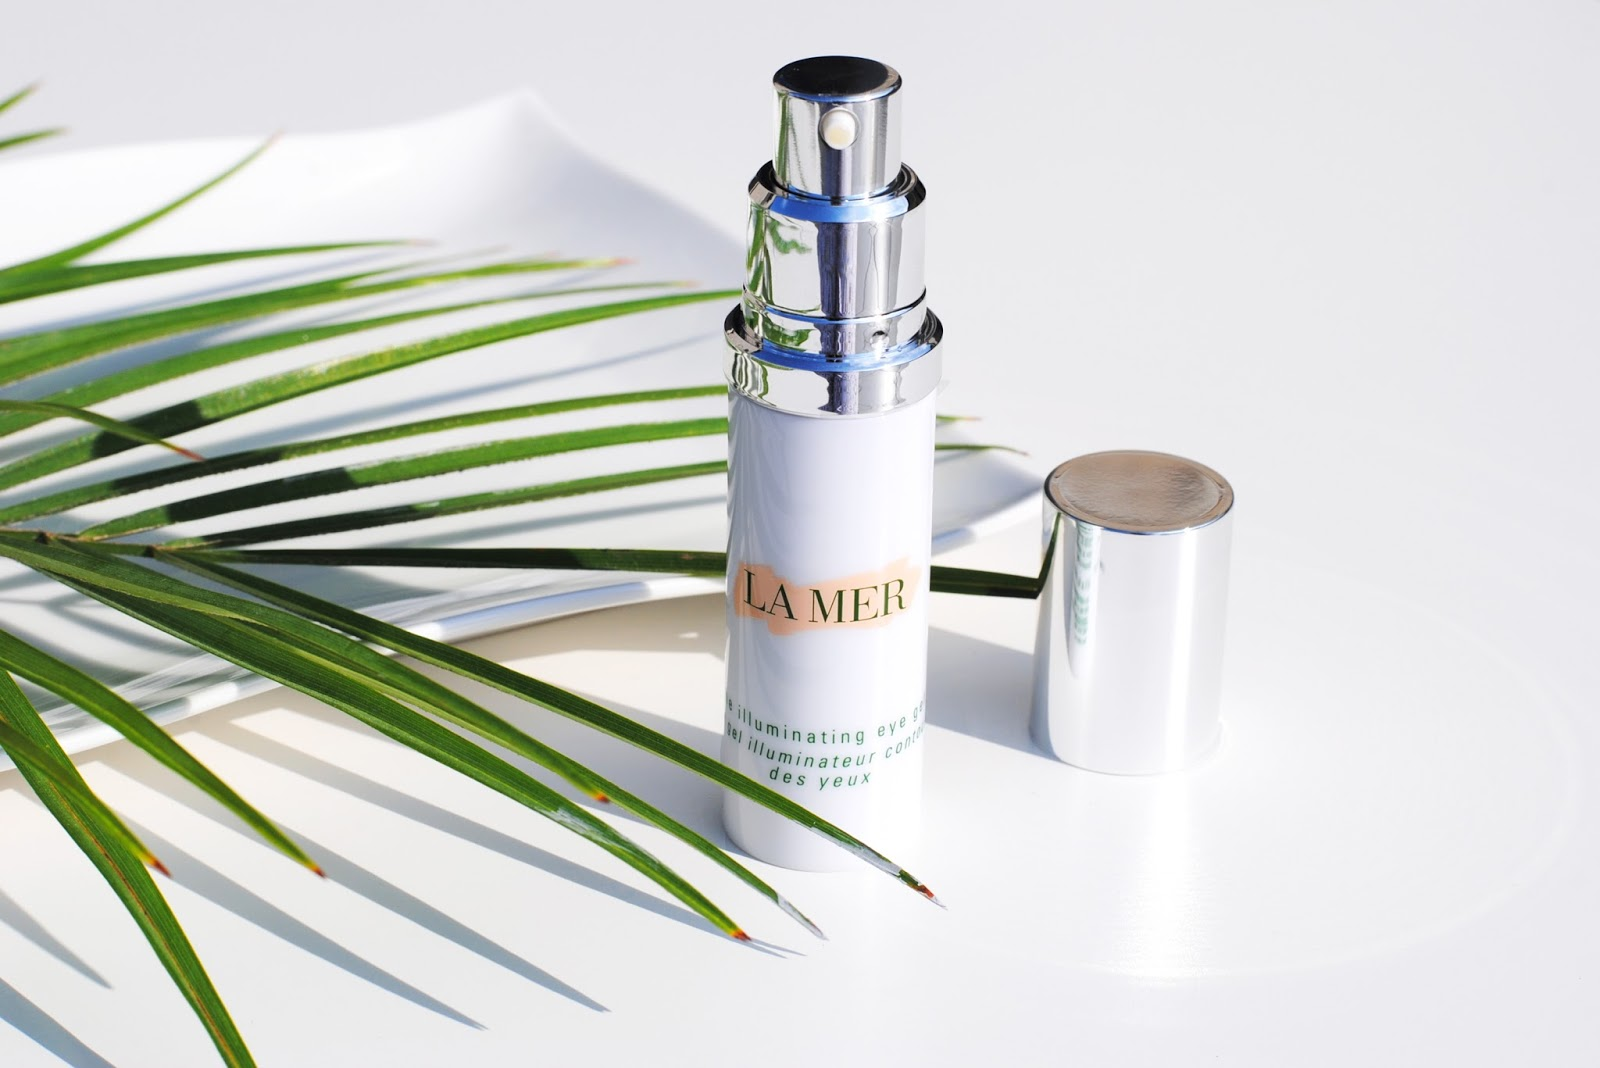 La Mer The Illuminating Eye Gel: